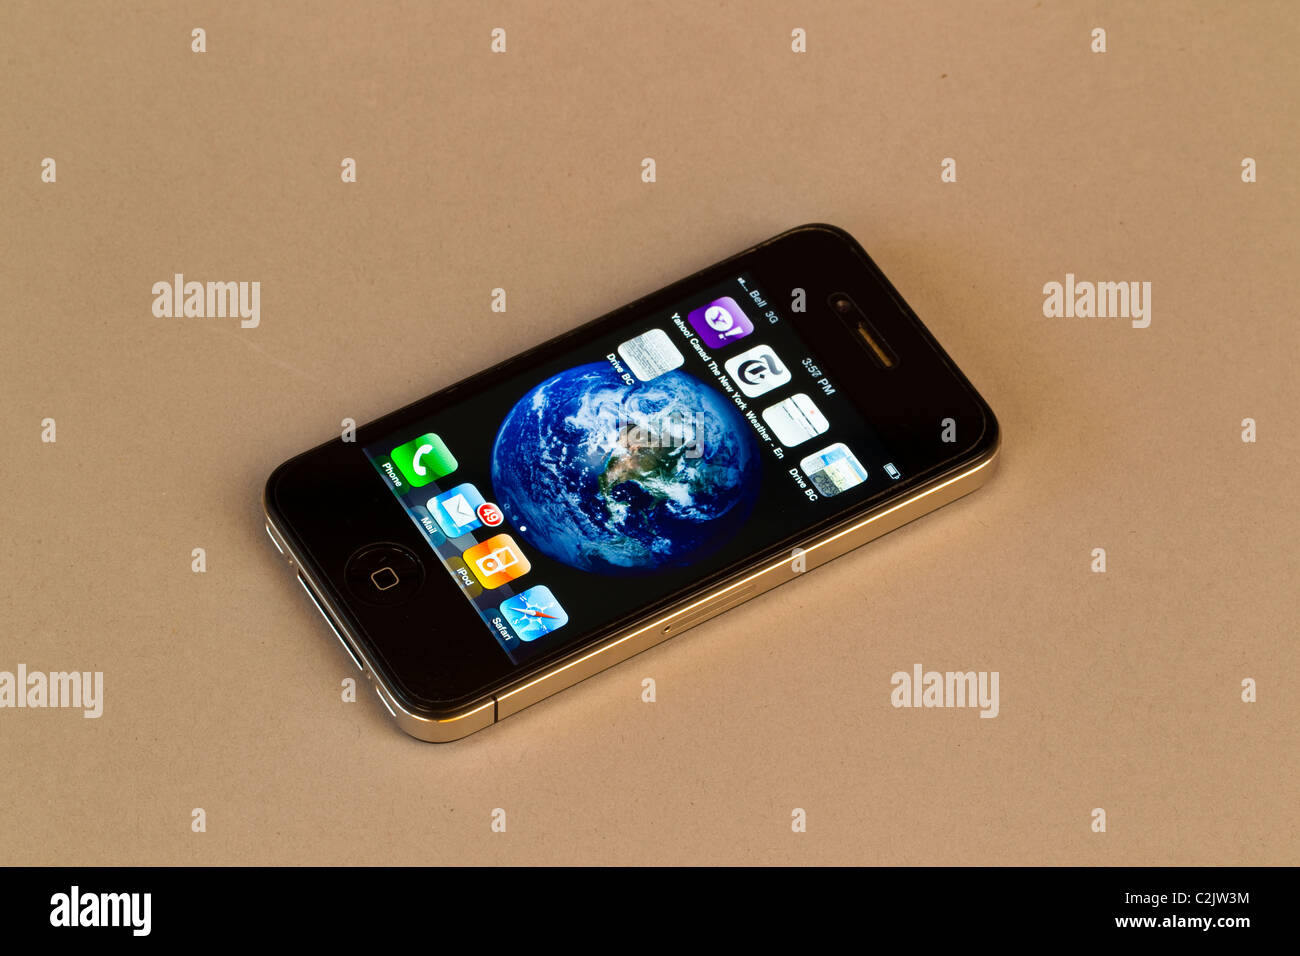 A cell phone shows an image of the Earth. - Stock Image